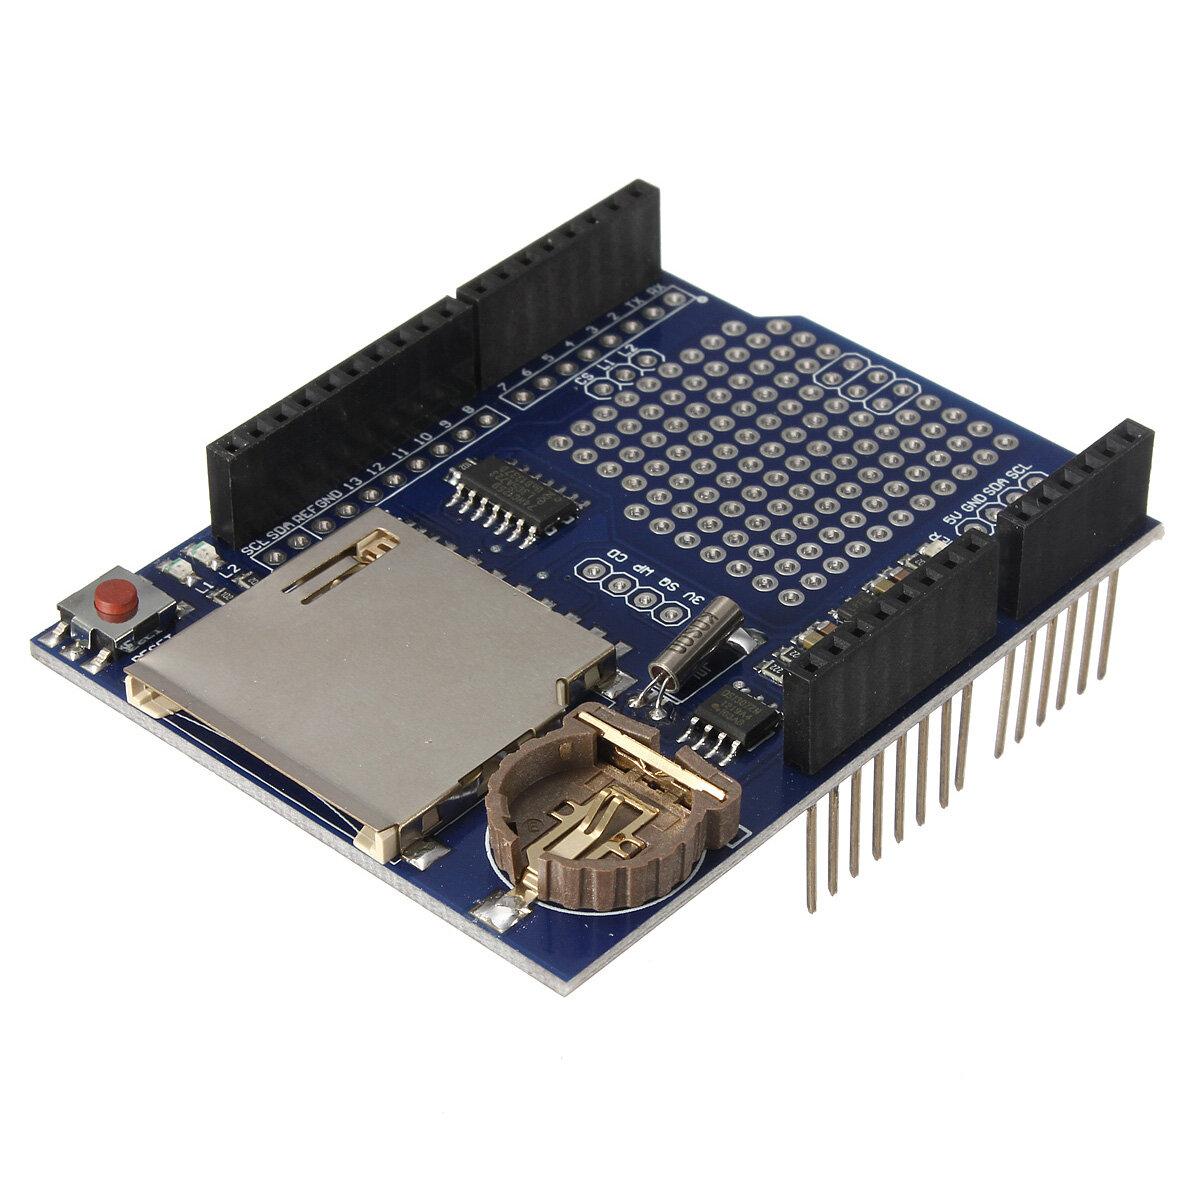 Logging Recorder DataLog Shield Data Logger Module For UNO SD Card Geekcreit for Arduino - products that work with official Arduino boards